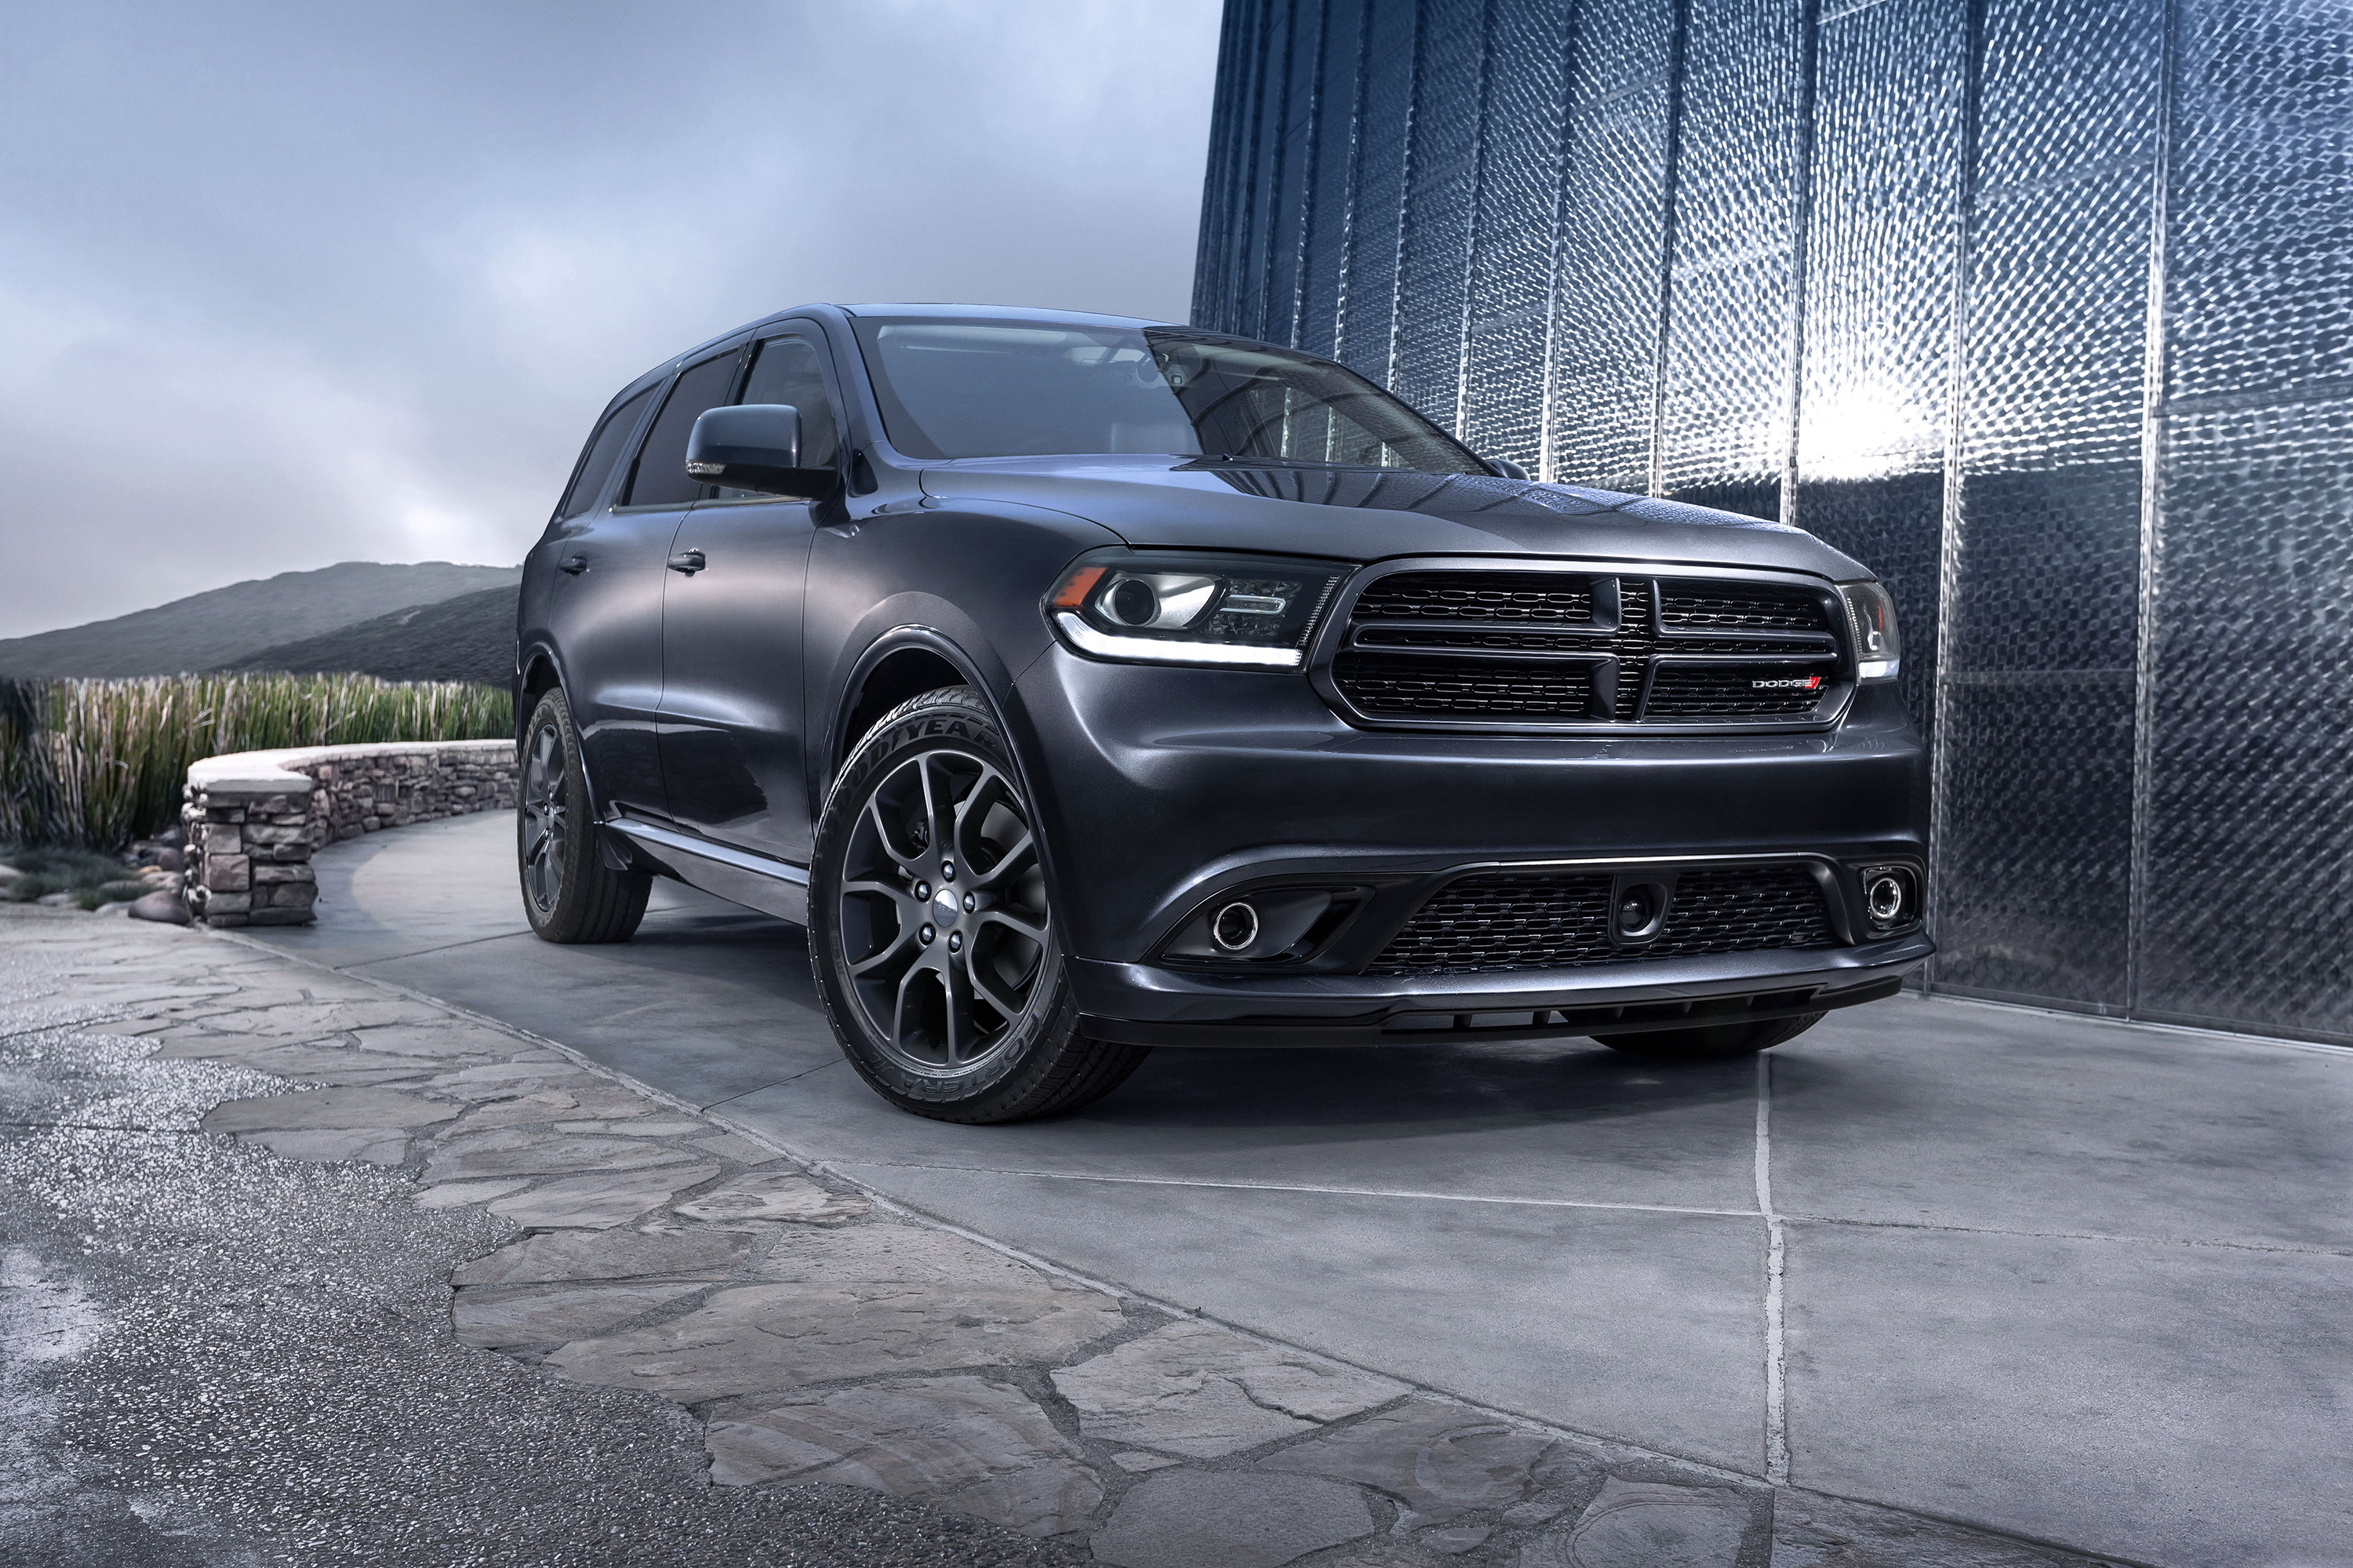 test photo hemi dodge reviews car driver original s rwd r durango review and rt t